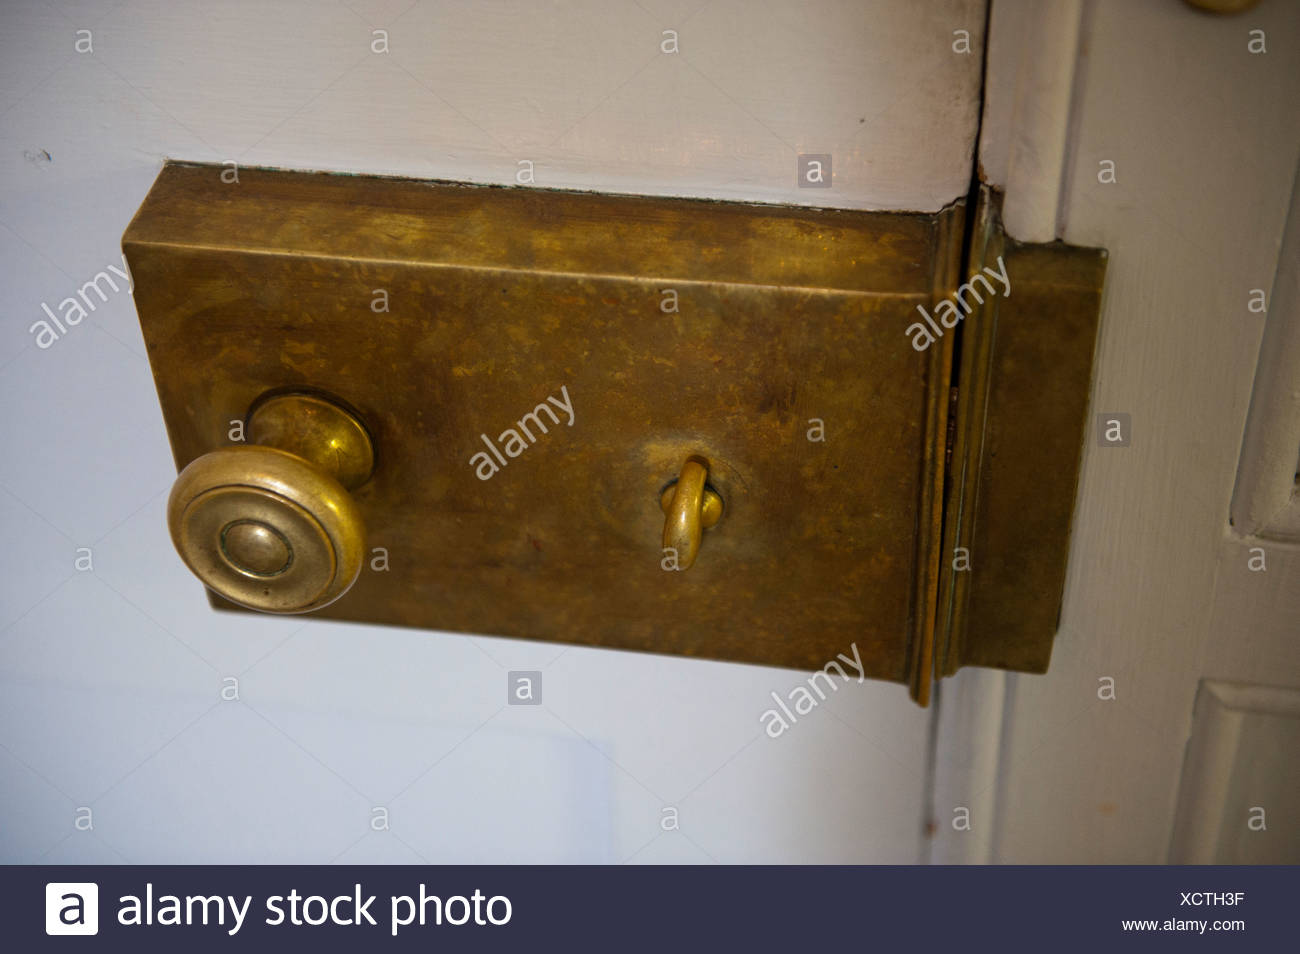 Close up of an antique lock on a door. Stock Photo